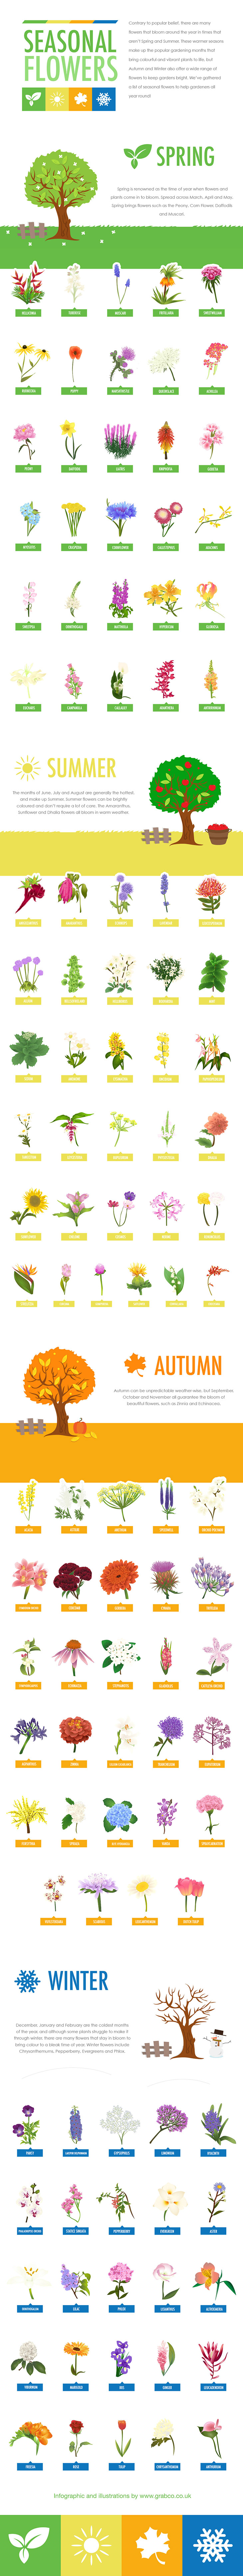 Seasonal Flowers Guide